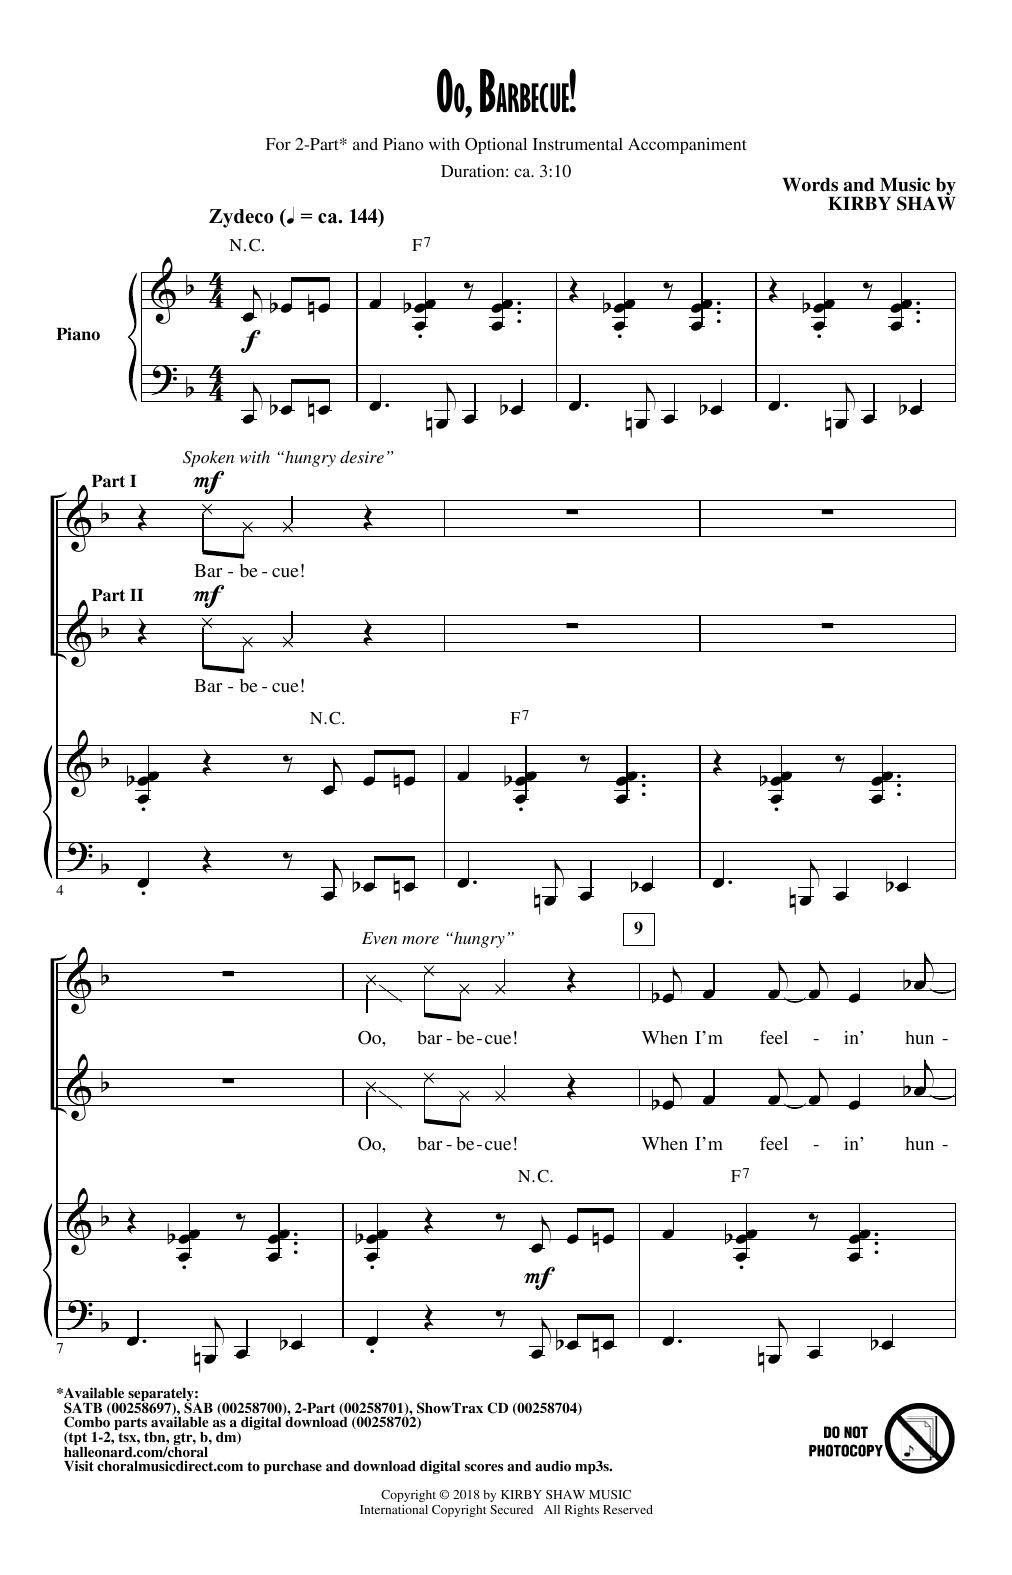 Kirby Shaw Oo, Barbecue! sheet music notes and chords. Download Printable PDF.